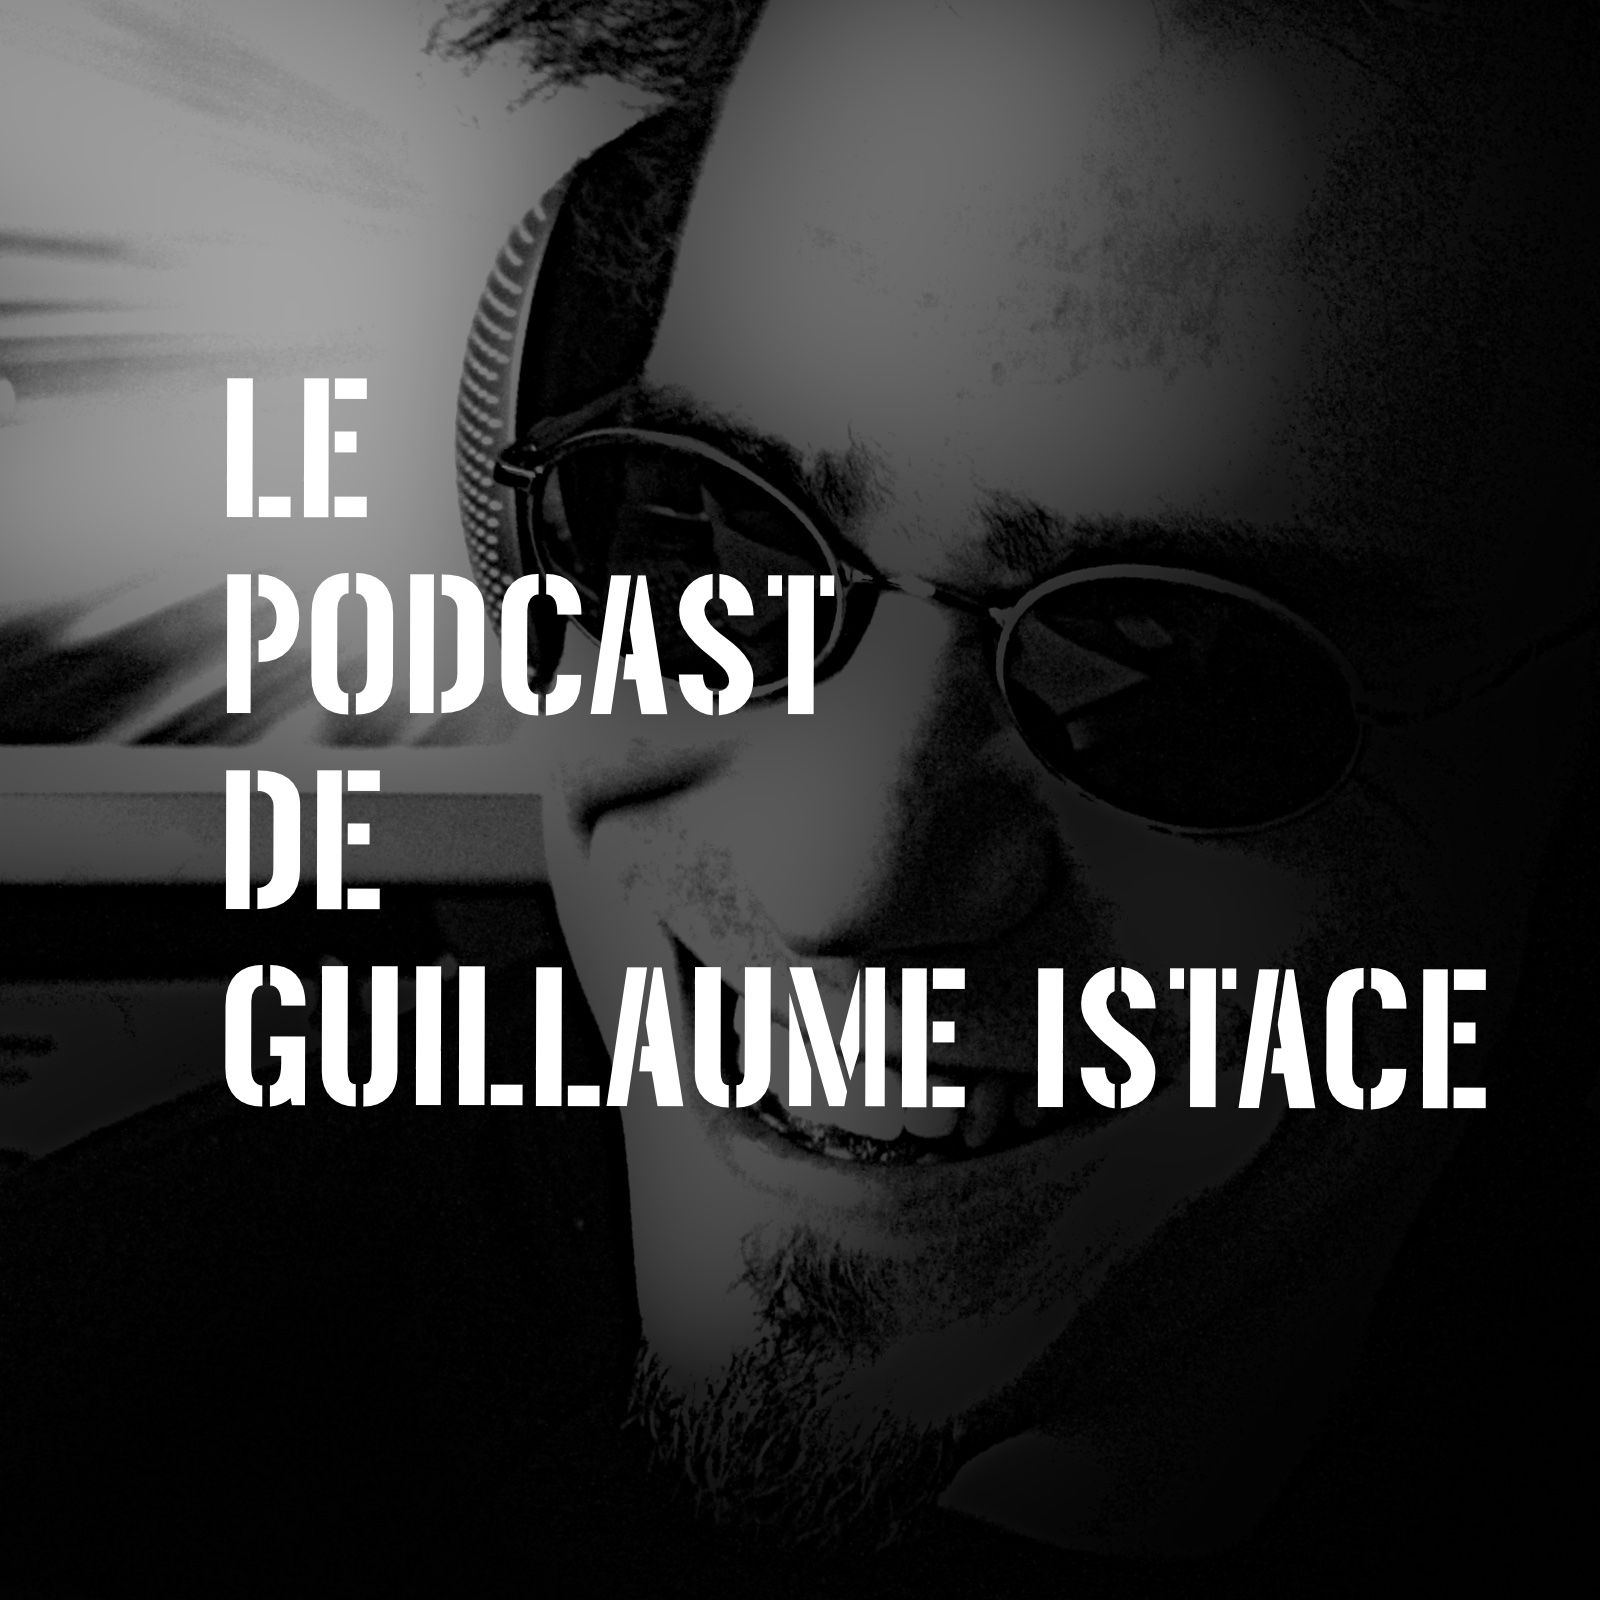 Le podcast de Guillaume Istace